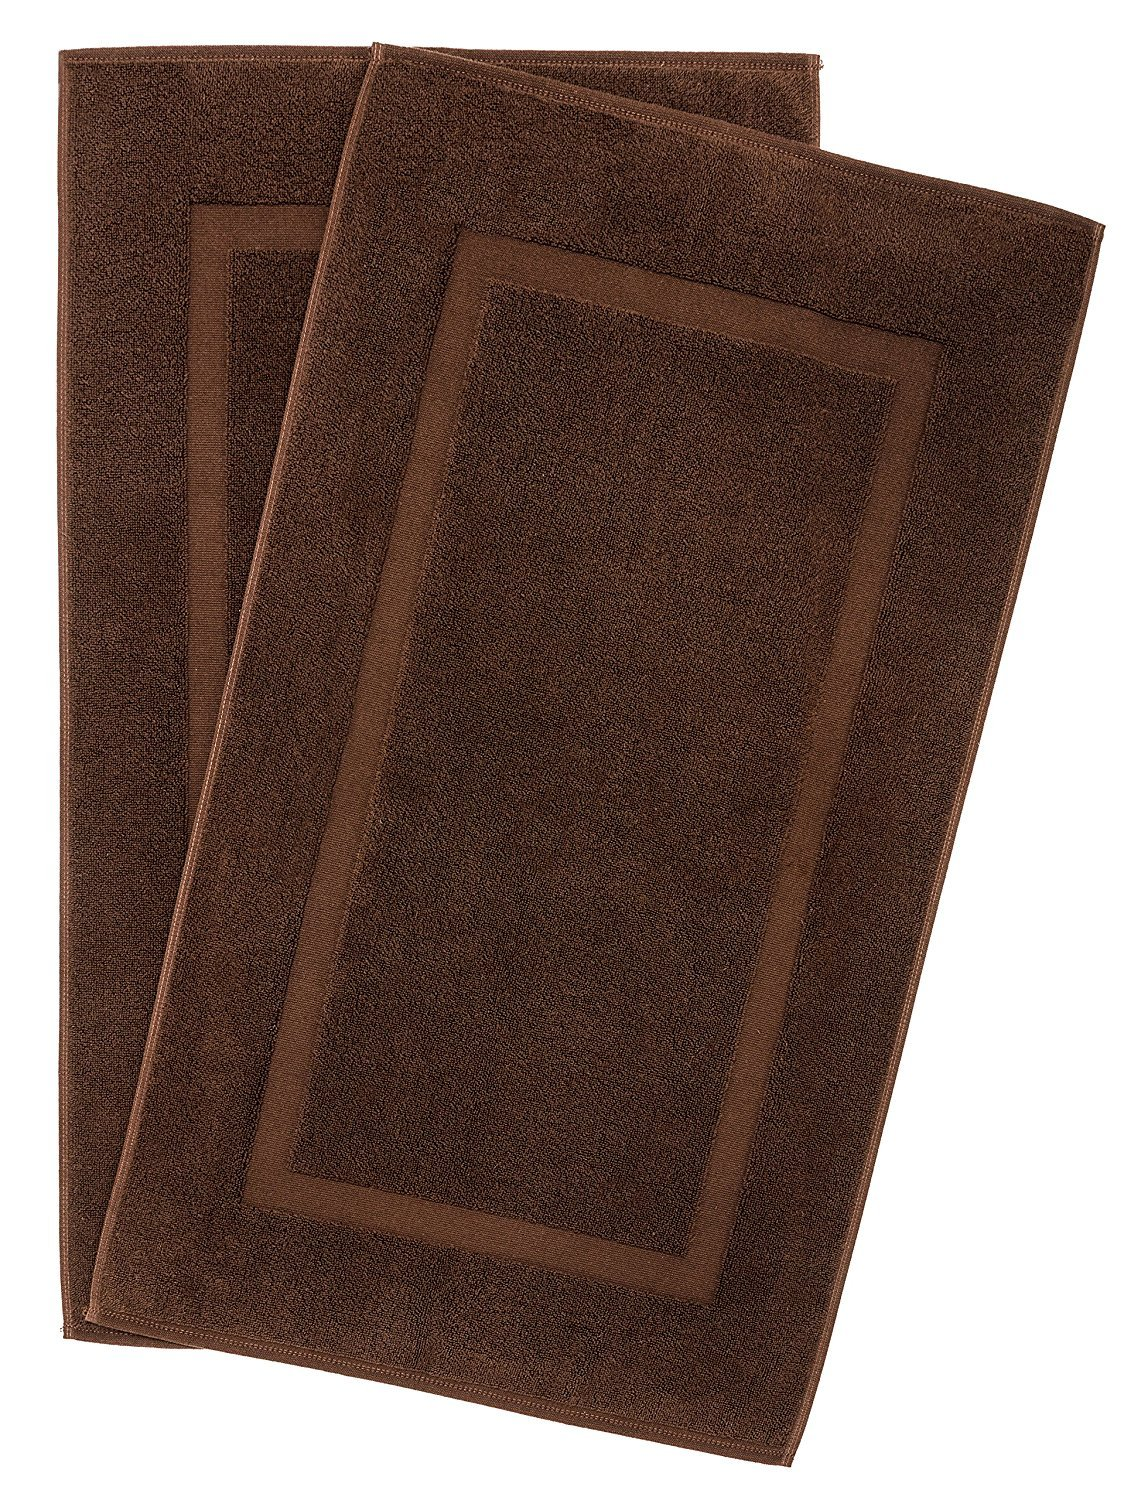 900 GSM Machine Washable 21x34 Inches 2-Pack Banded Bath Mats, Luxury Hotel and Spa Quality, 100% Ring Spun Genuine Cotton, Maximum Softness and Absorbency by United Home Textile, Chocolate Brown